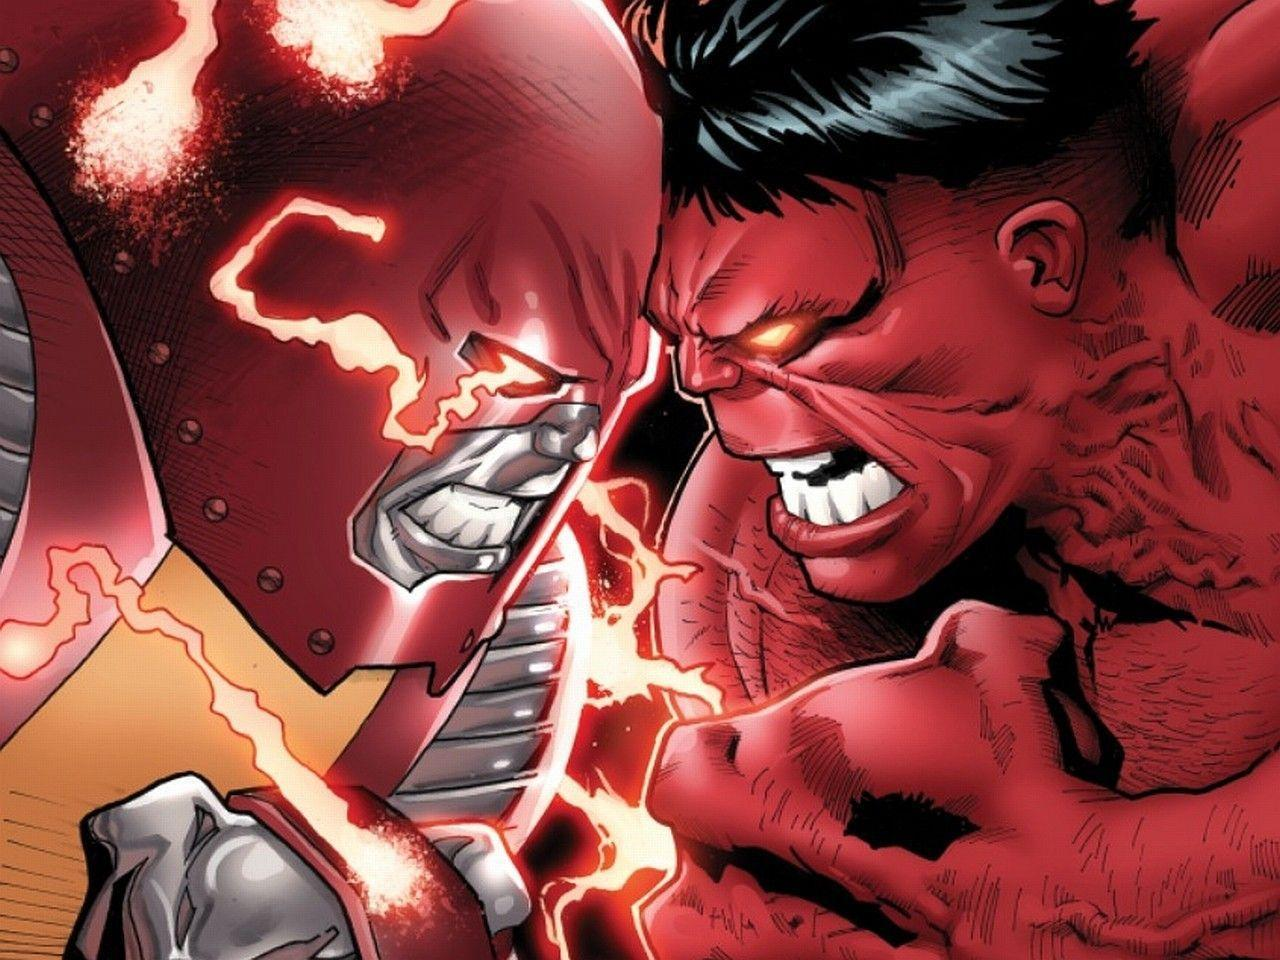 The Image of Comics Marvel Comics Red Hulk Cyclops HD Wallpapers